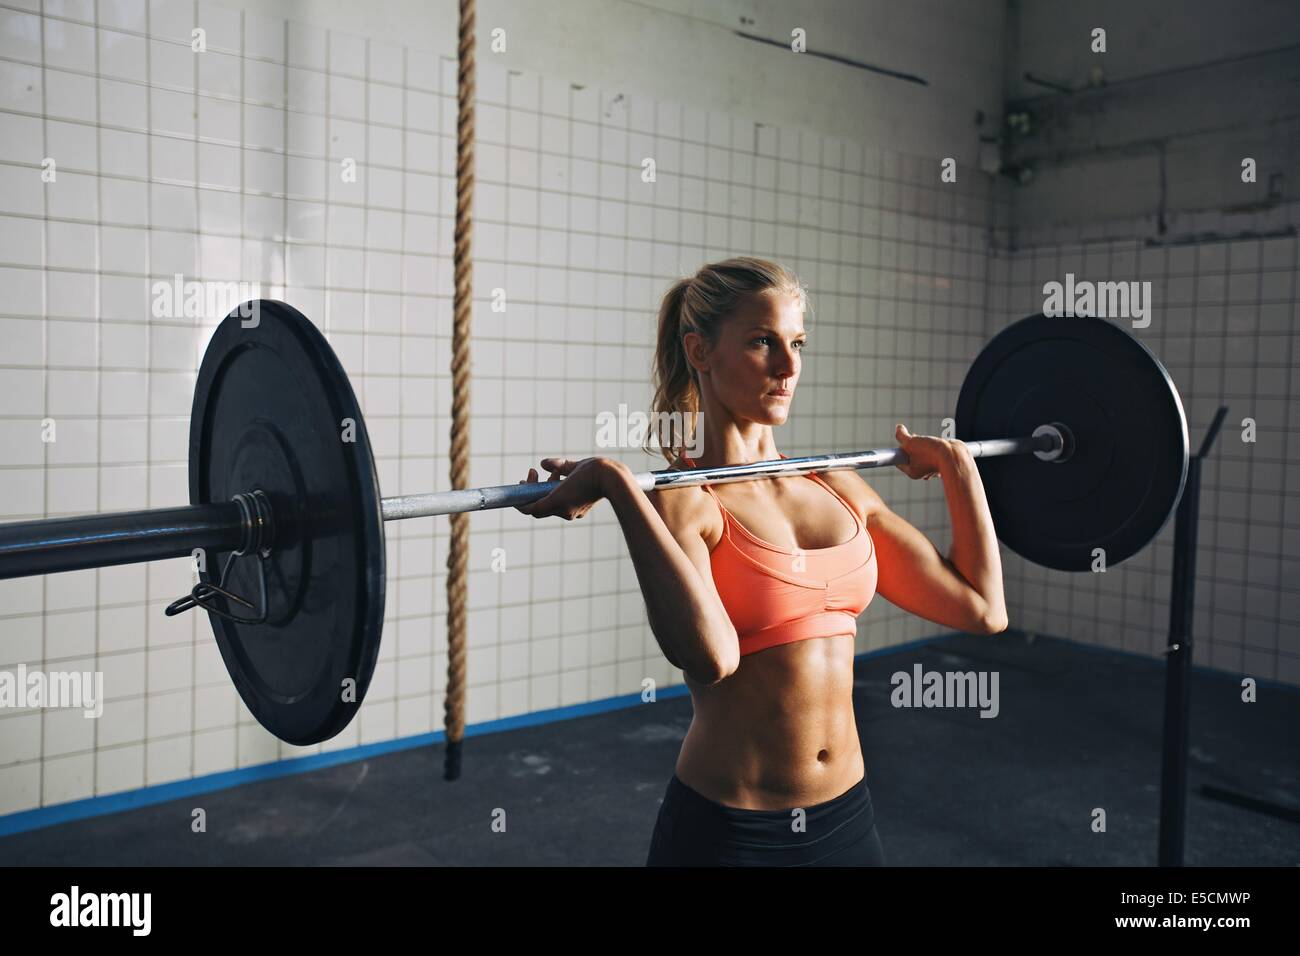 Femme Fitness concentrant tout en soulevant des barres. Strong Woman lifting weights in crossfit gym. Modèle Photo Stock